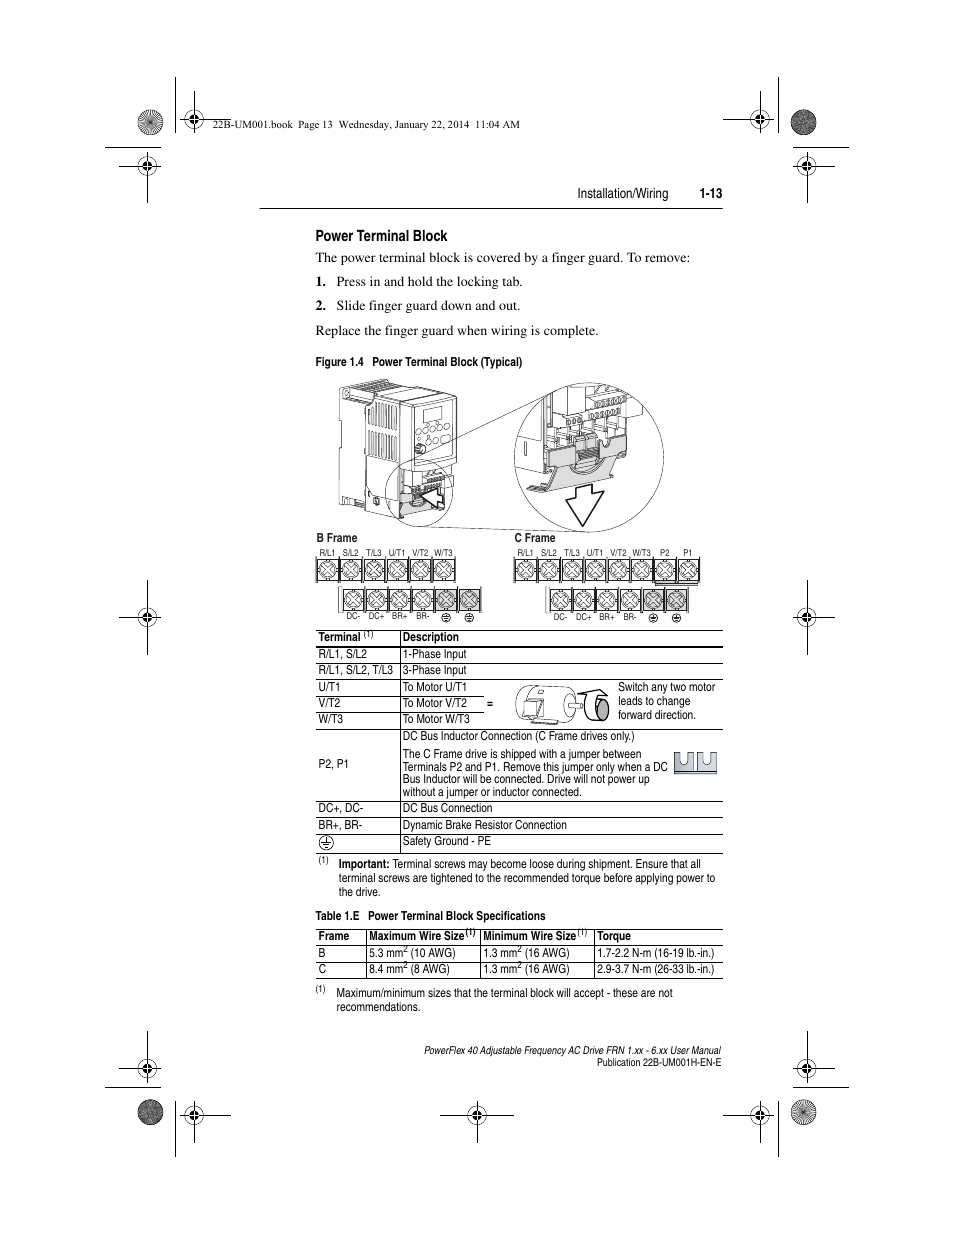 Wiring Diagram Powerflex 40p Electrical Diagrams 40 Ethernet Page 2 And Schematics Basic Power Terminal Block